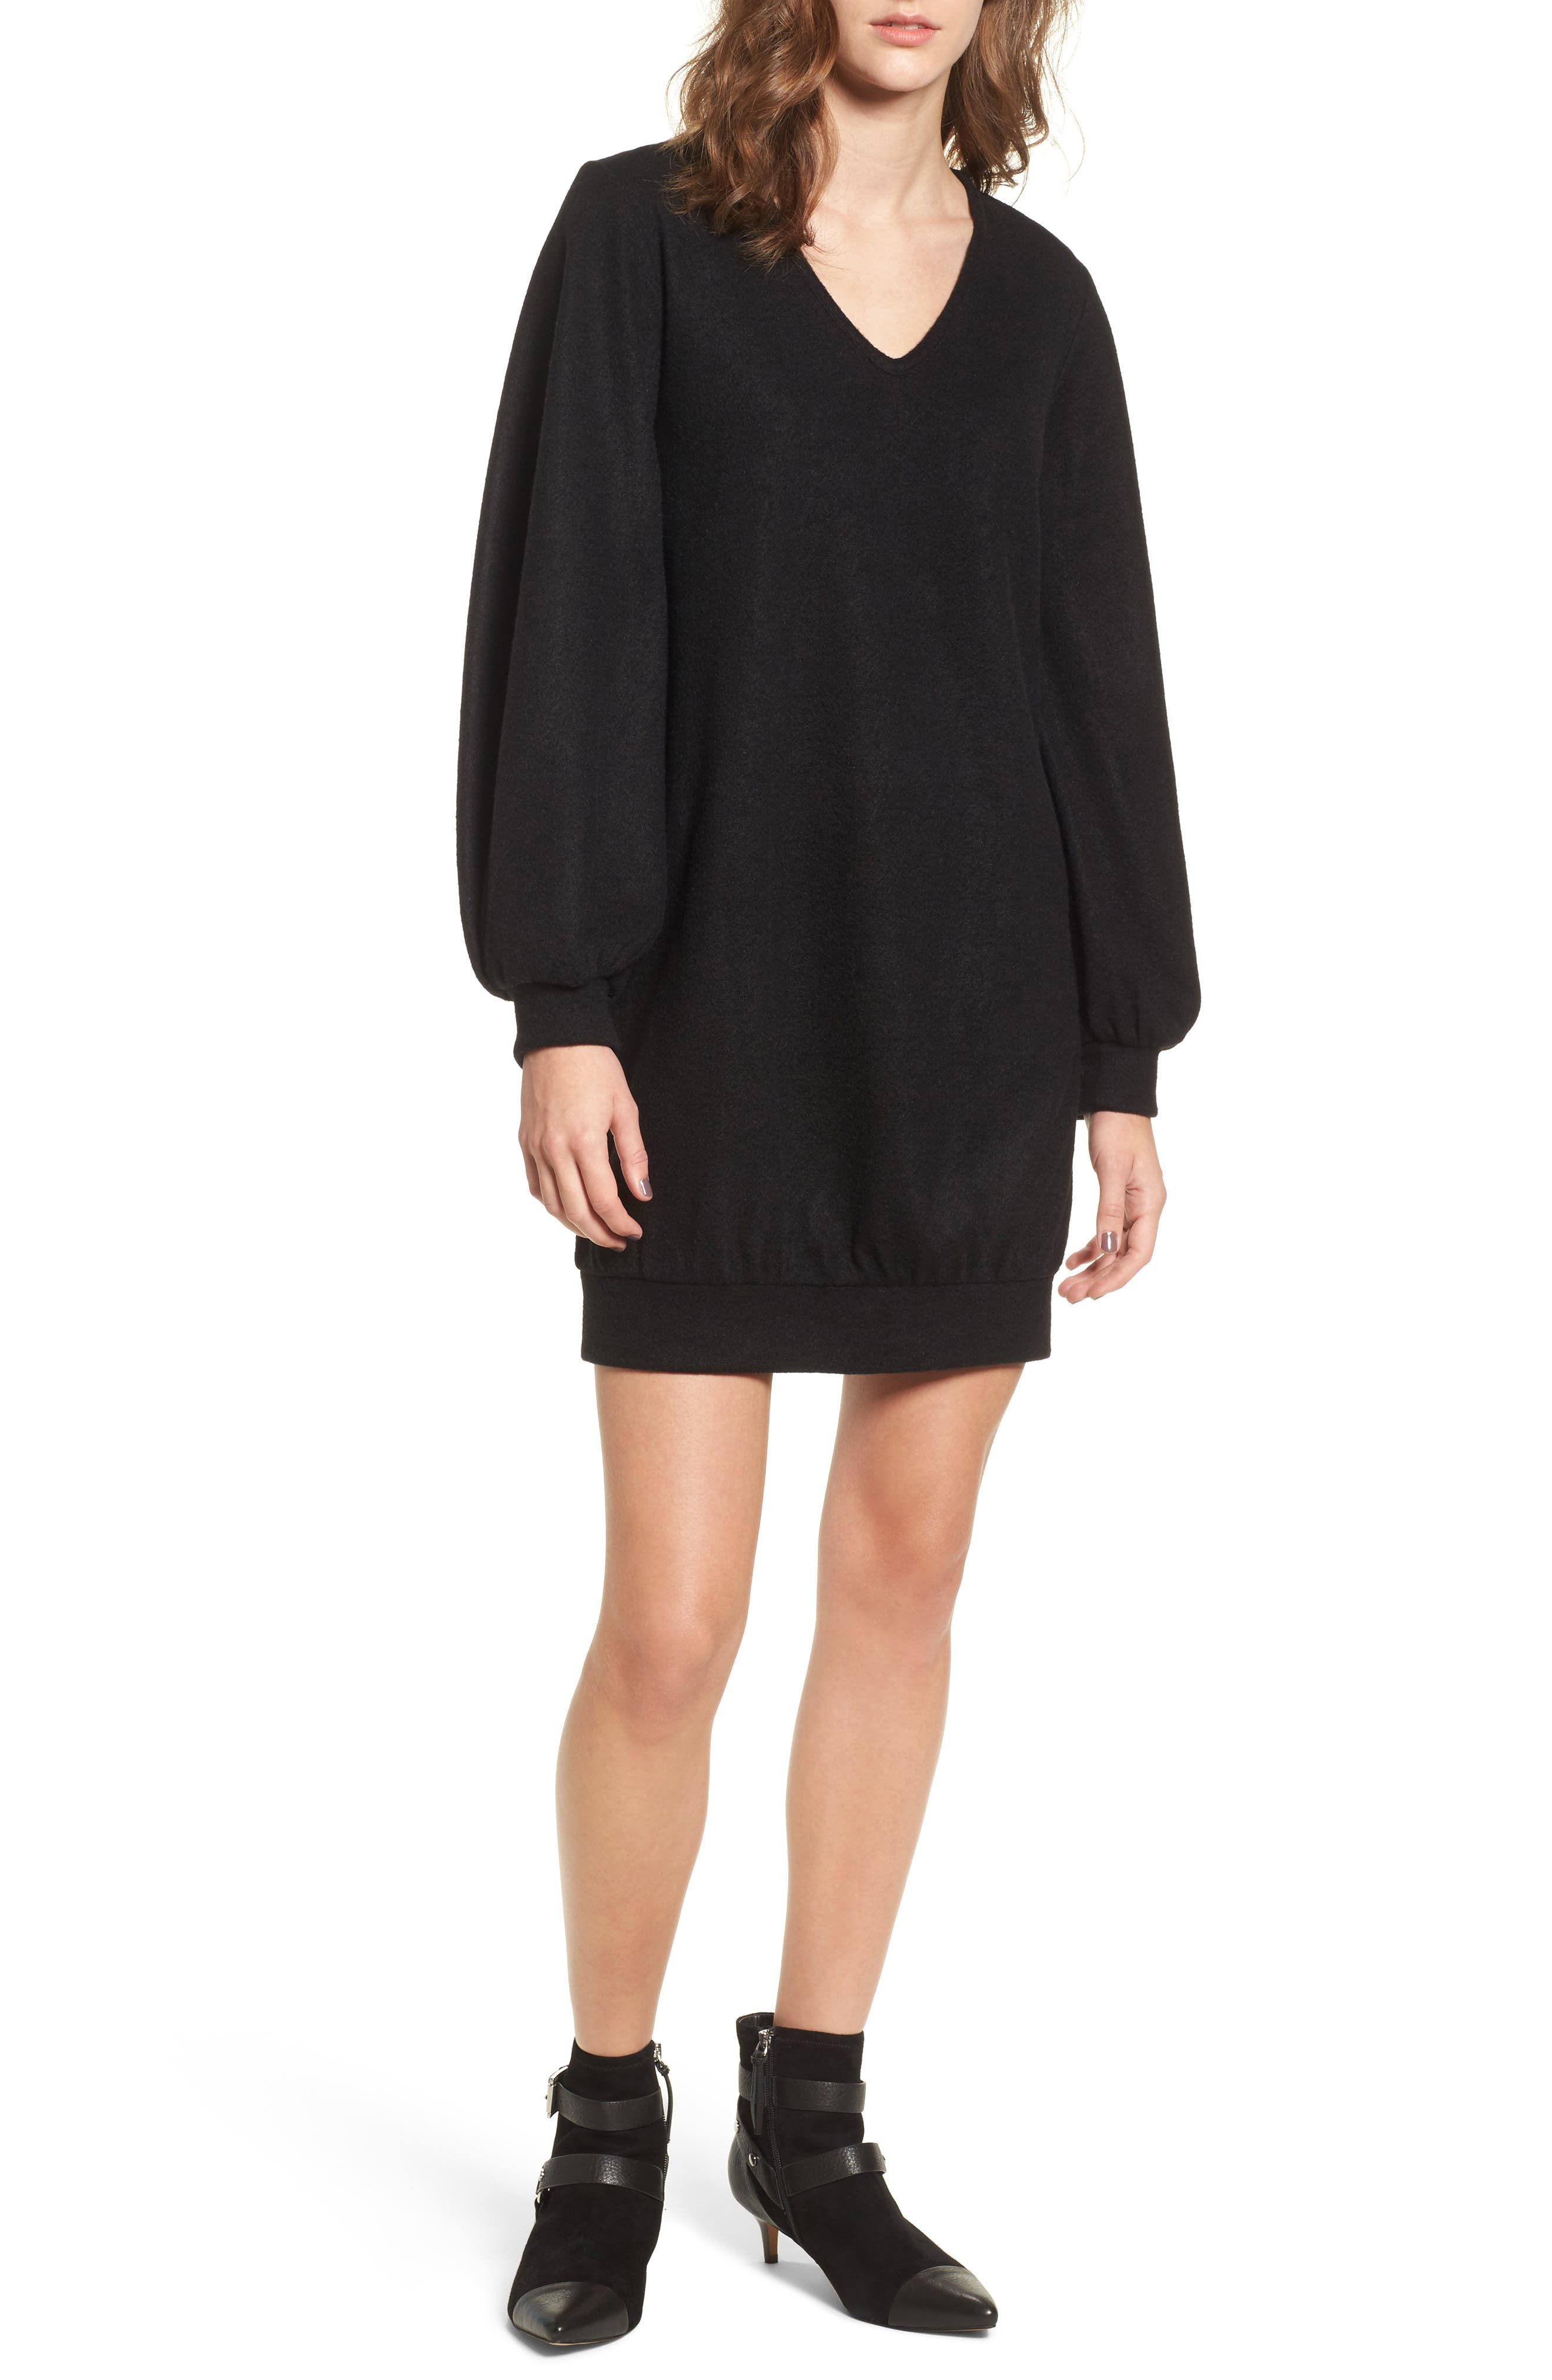 Alternate Image 1 Selected - Everly Balloon Sleeve Sweater Dress